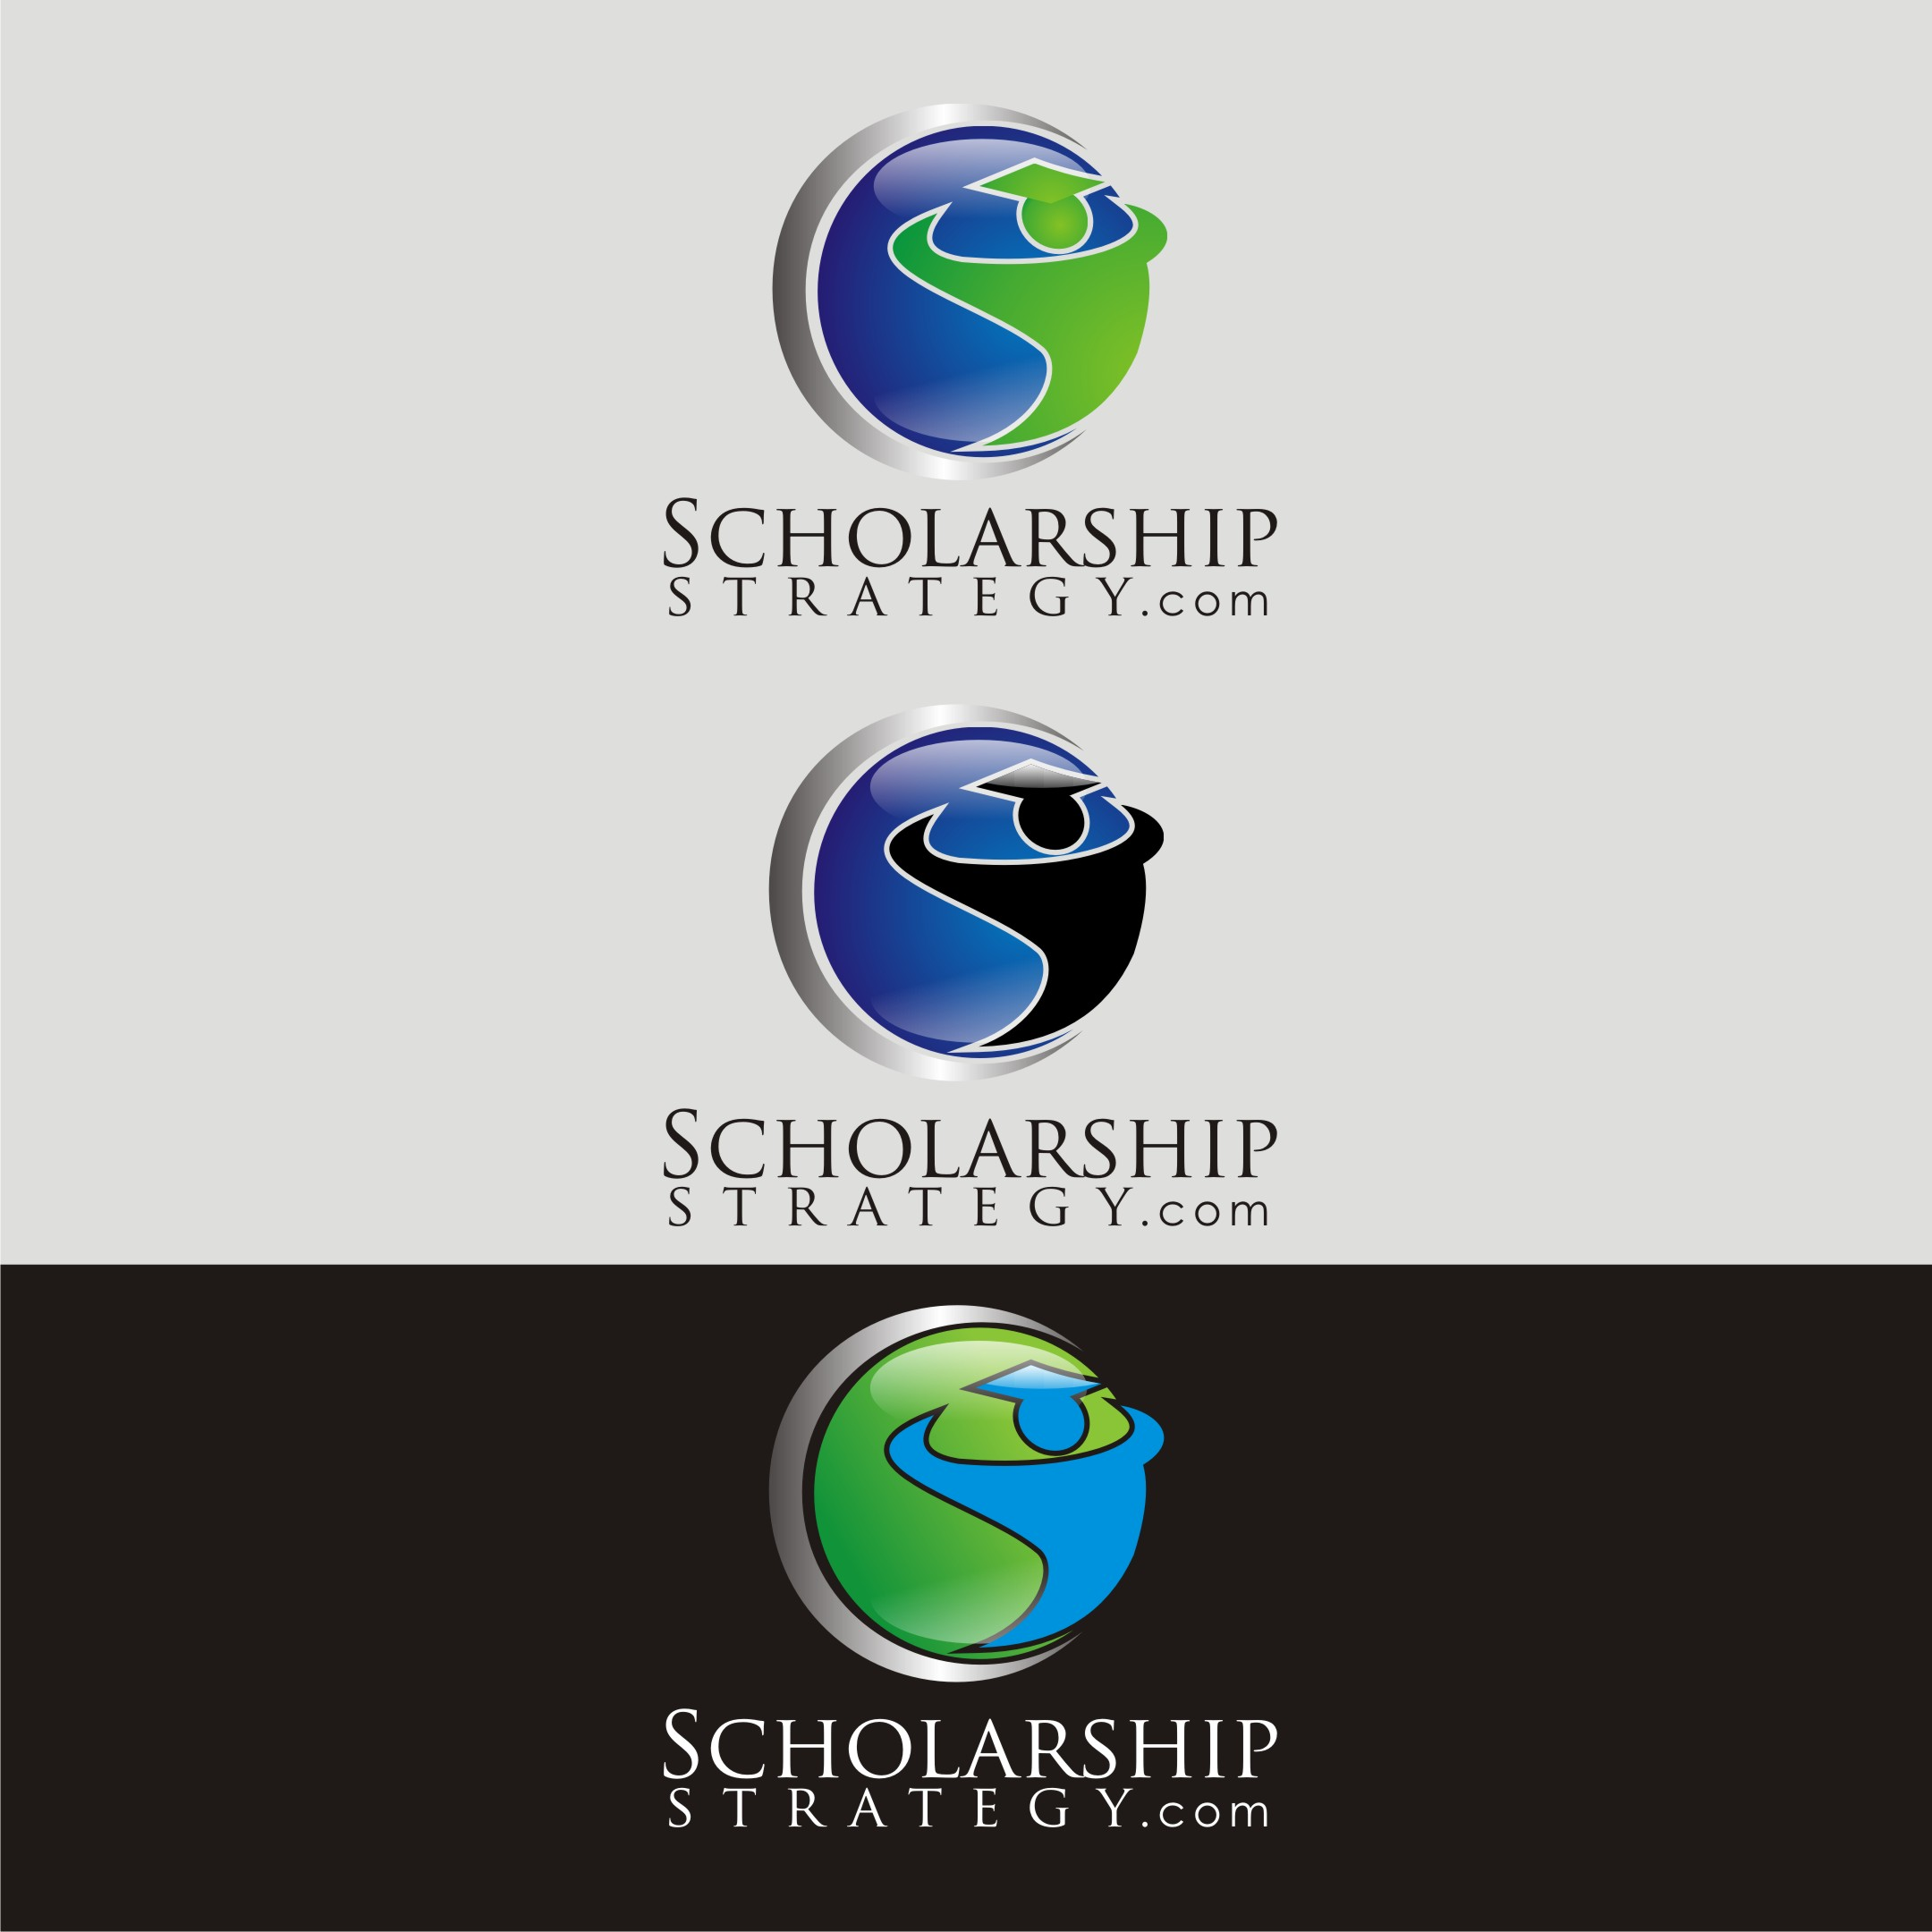 Logo Design by Rock n Rool - Entry No. 148 in the Logo Design Contest Captivating Logo Design for Scholarshipstrategy.com.